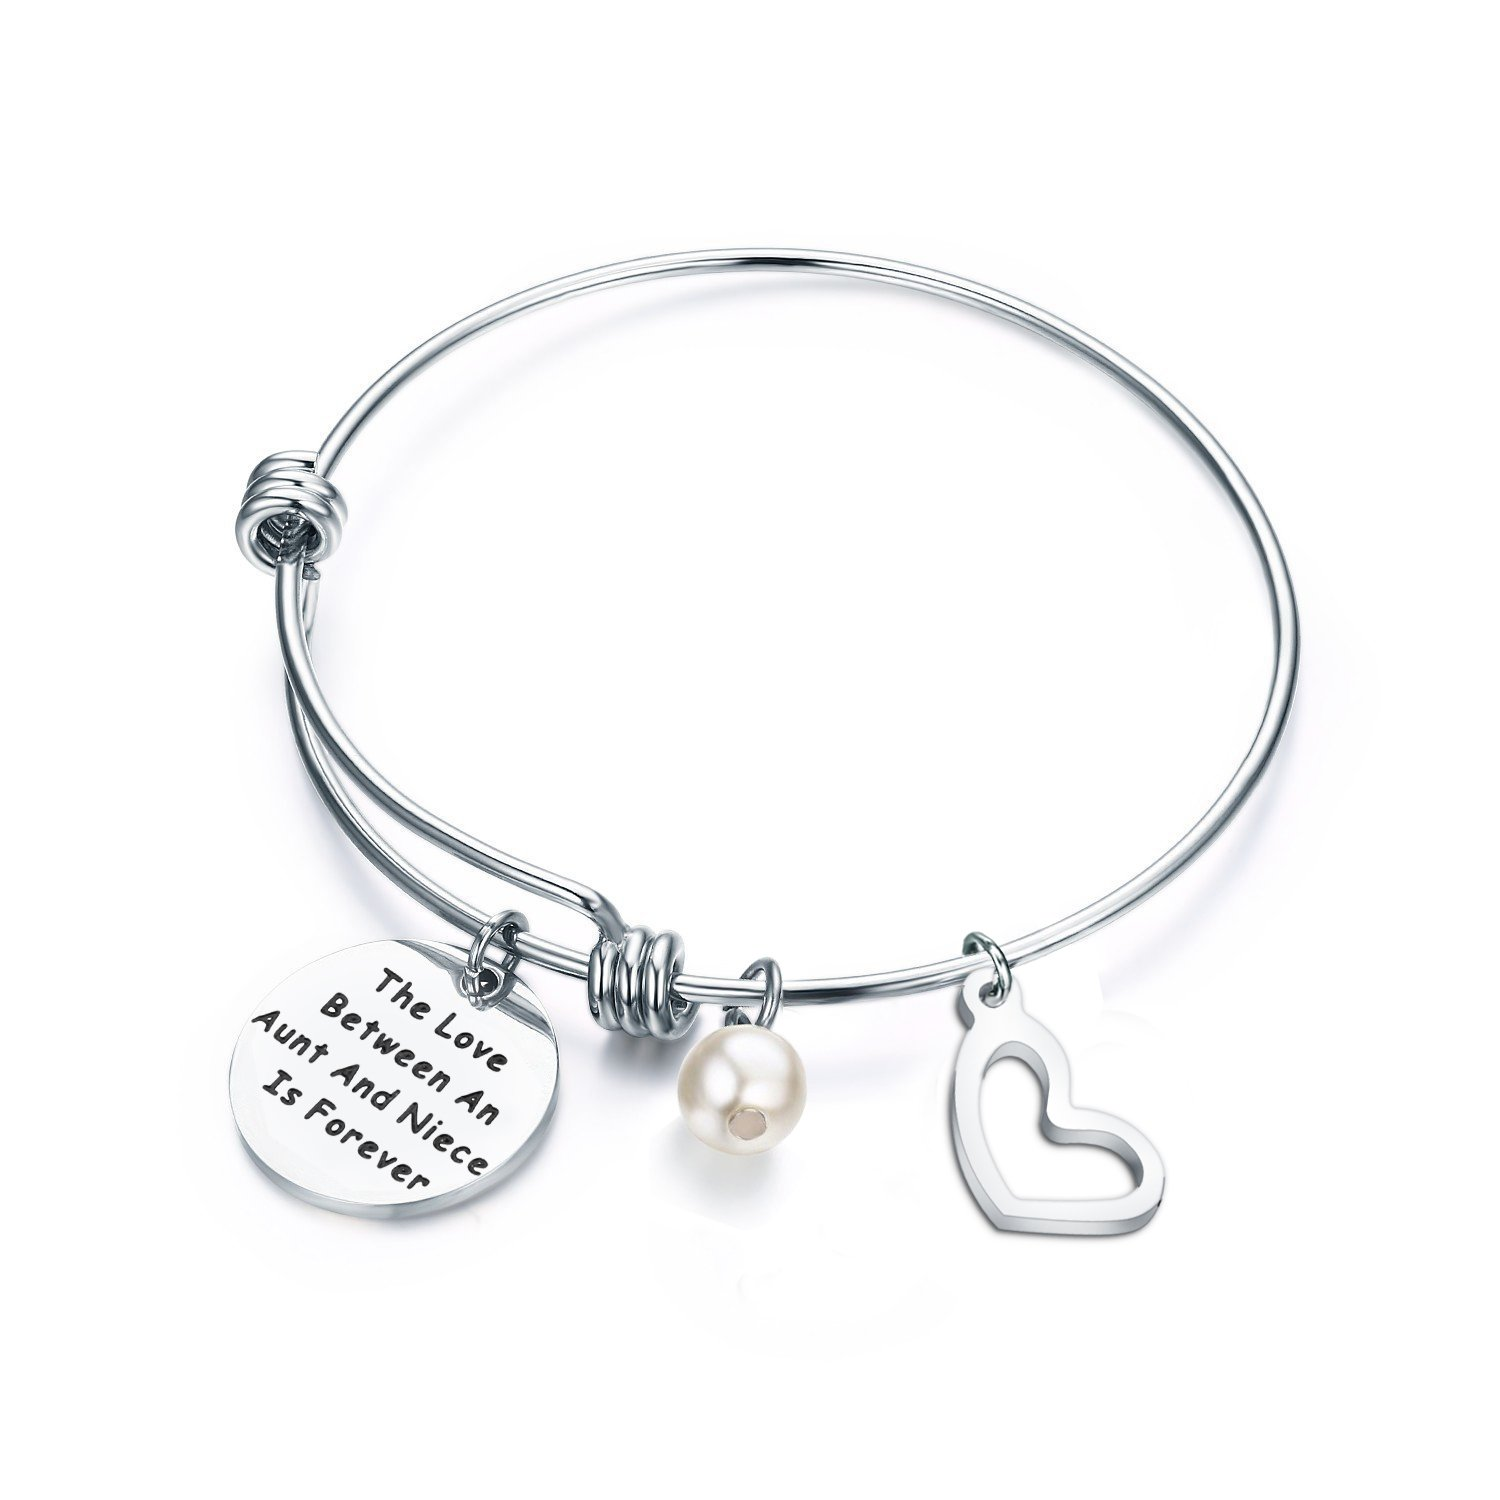 ENSIANTH Aunt and Niece Gift The Love Between Aunt & Niece is Forever Bracelet Expandable Charm Bracelet Aunt Niece Jewelry